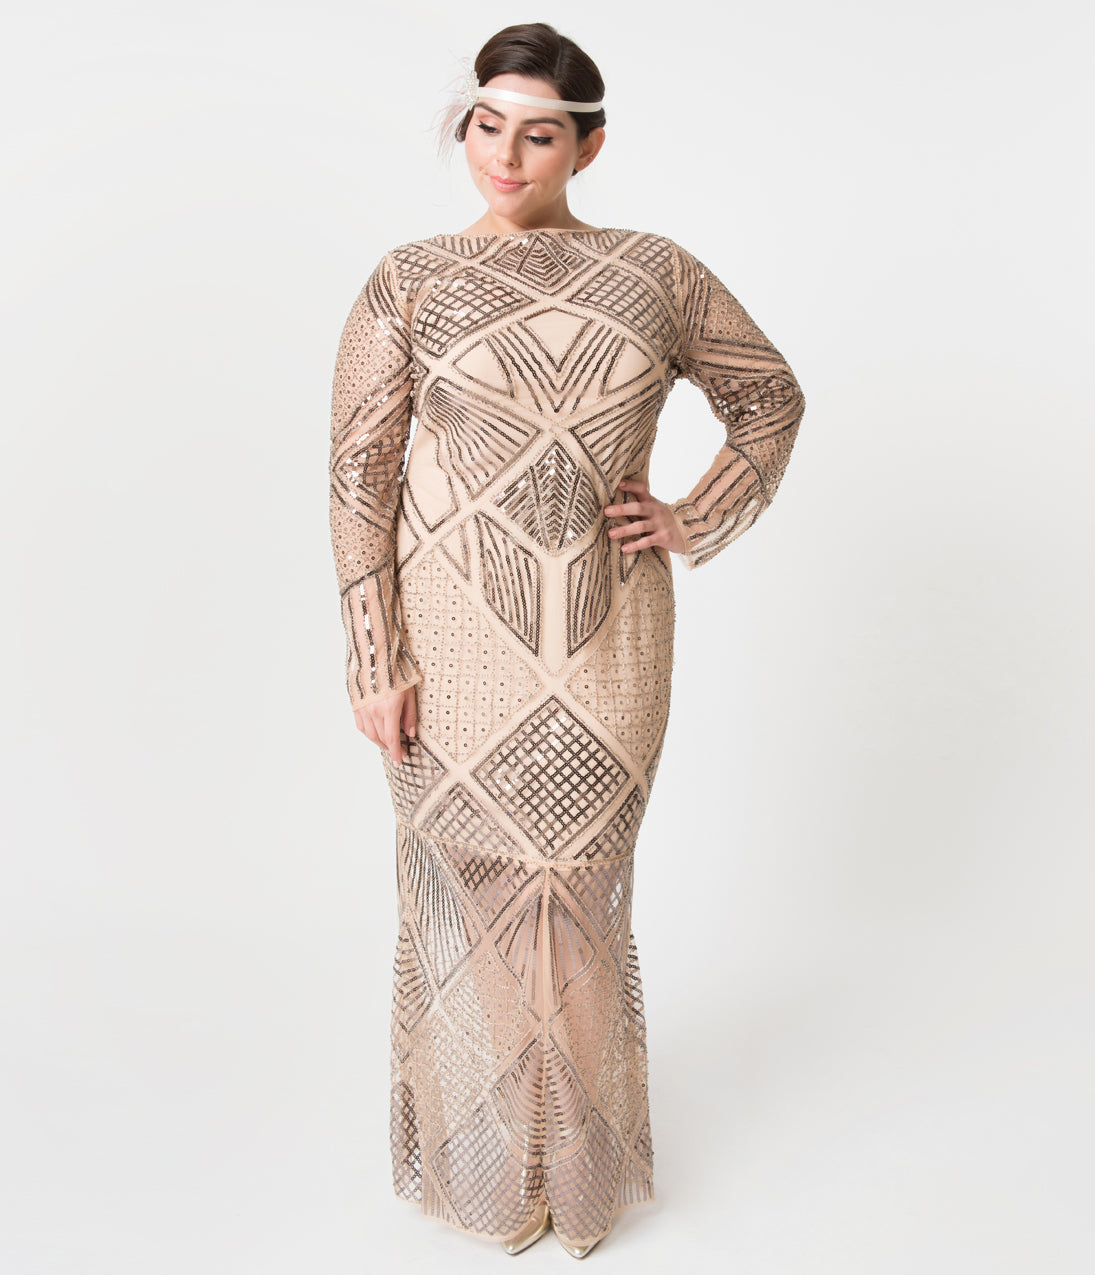 Vintage New Years Eve Dresses – Vintage Inspired Styles Unique Vintage Plus Size Blush Rose Sleeved Beaded Régine Long Flapper Dress $148.00 AT vintagedancer.com